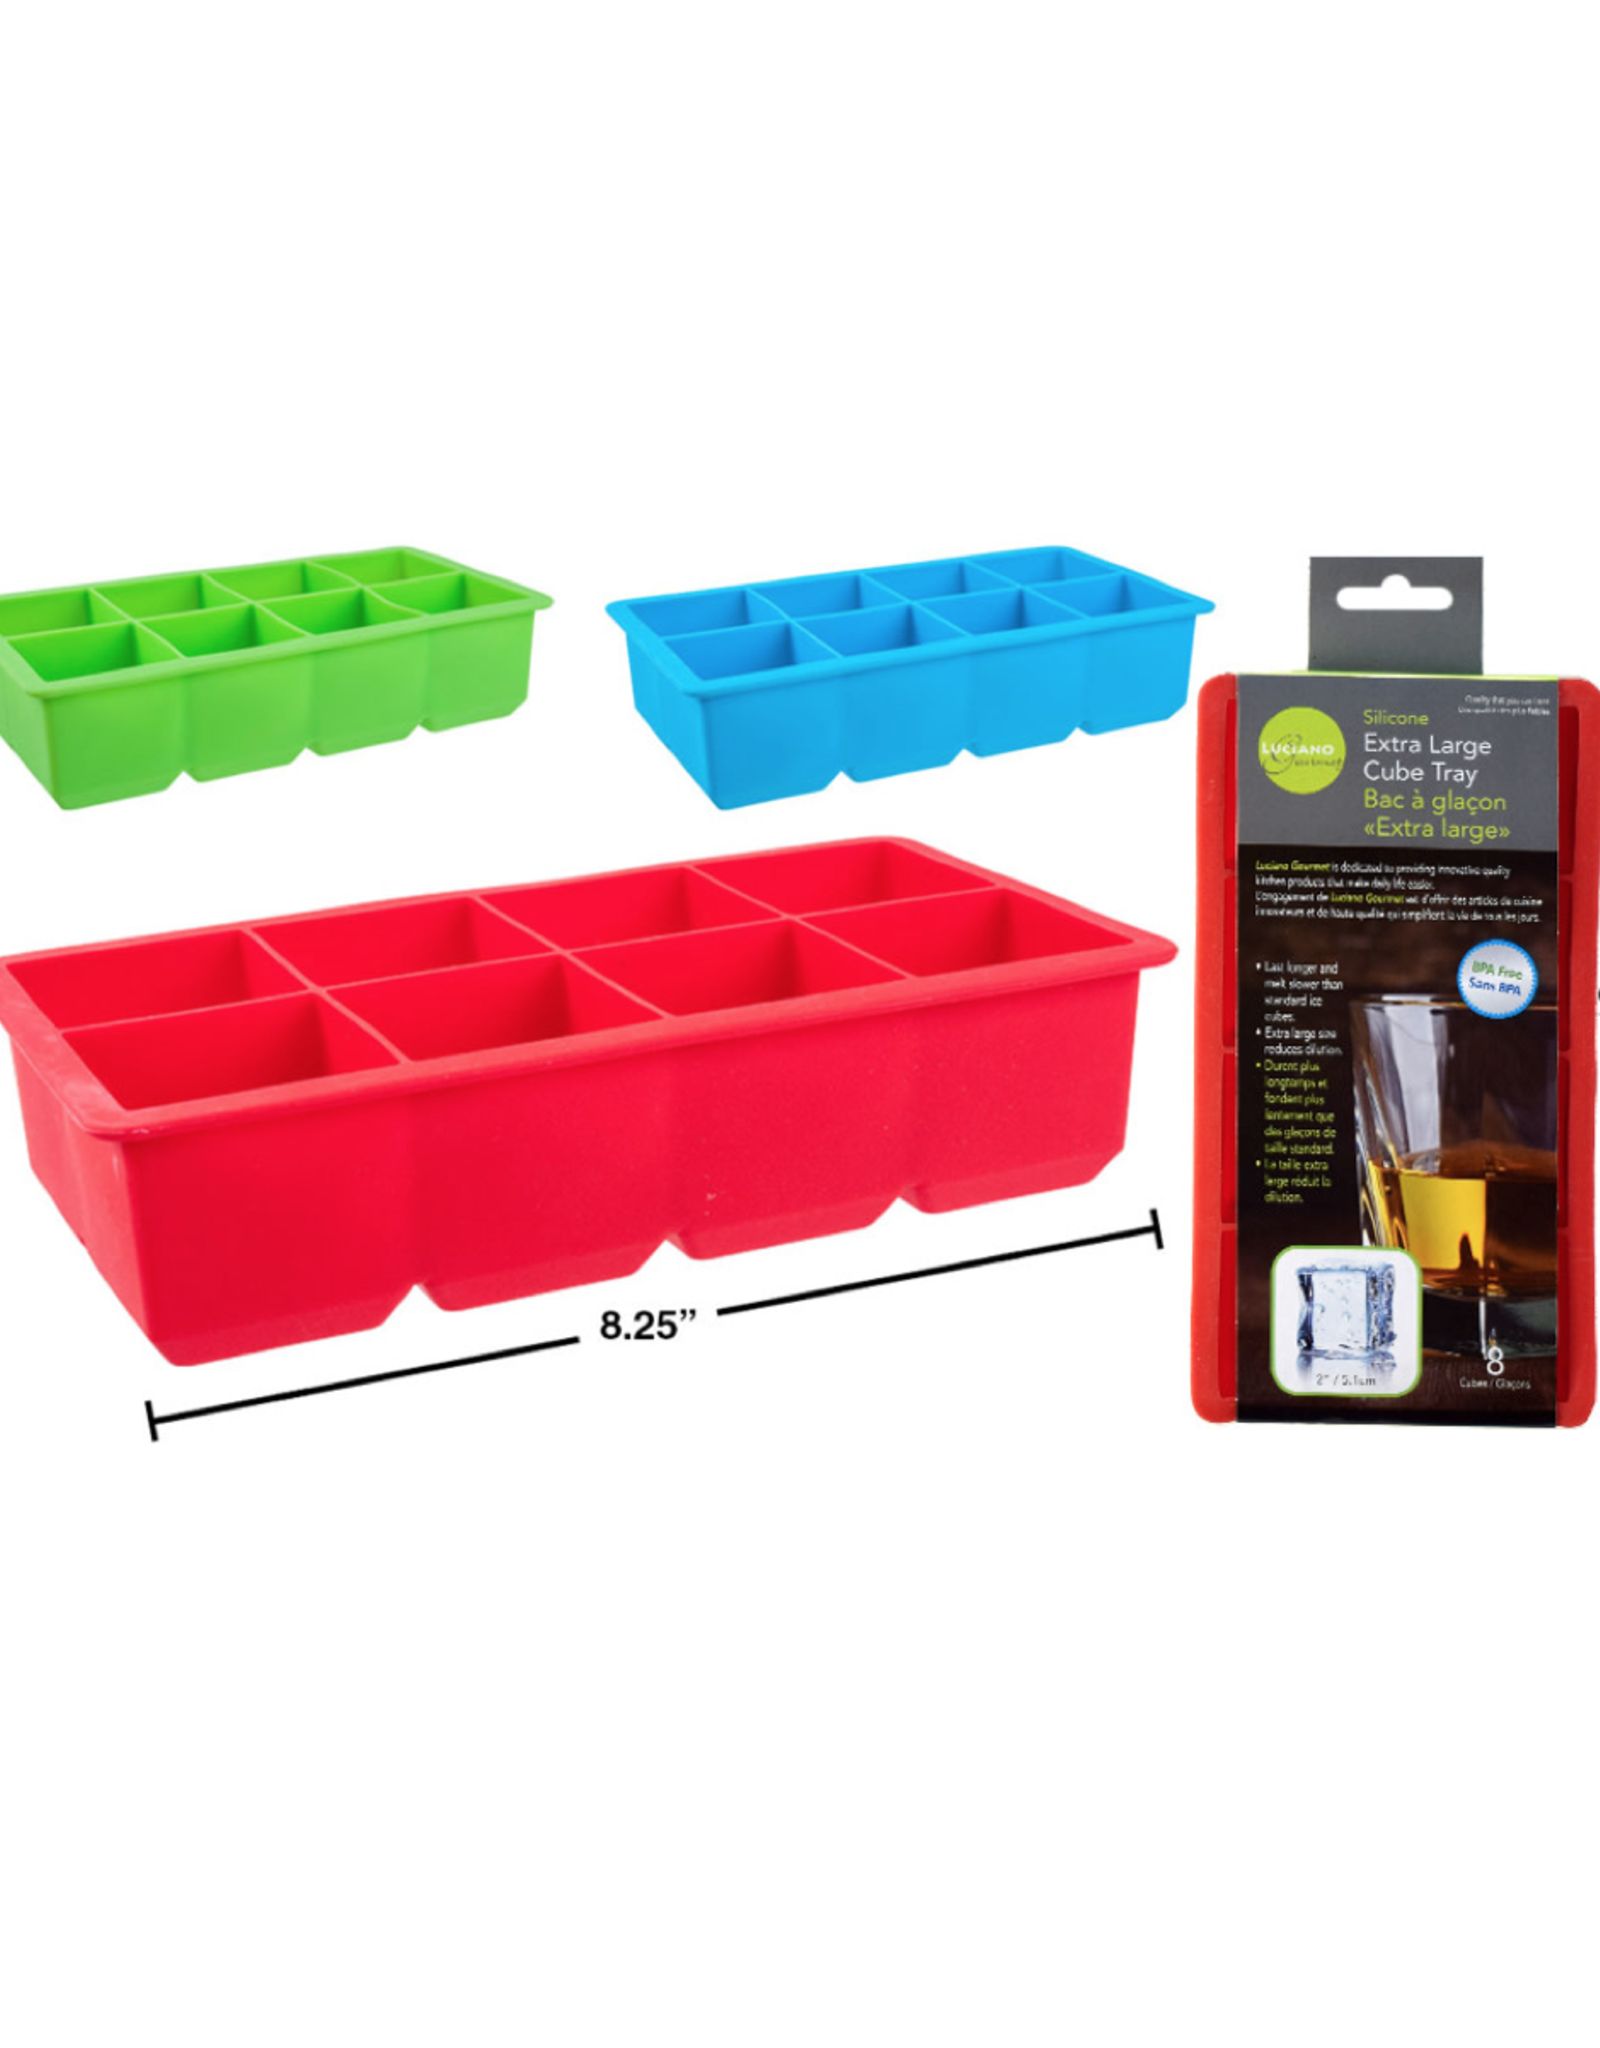 CTG - Silicone Large Cube Ice Tray 8 Cubes /